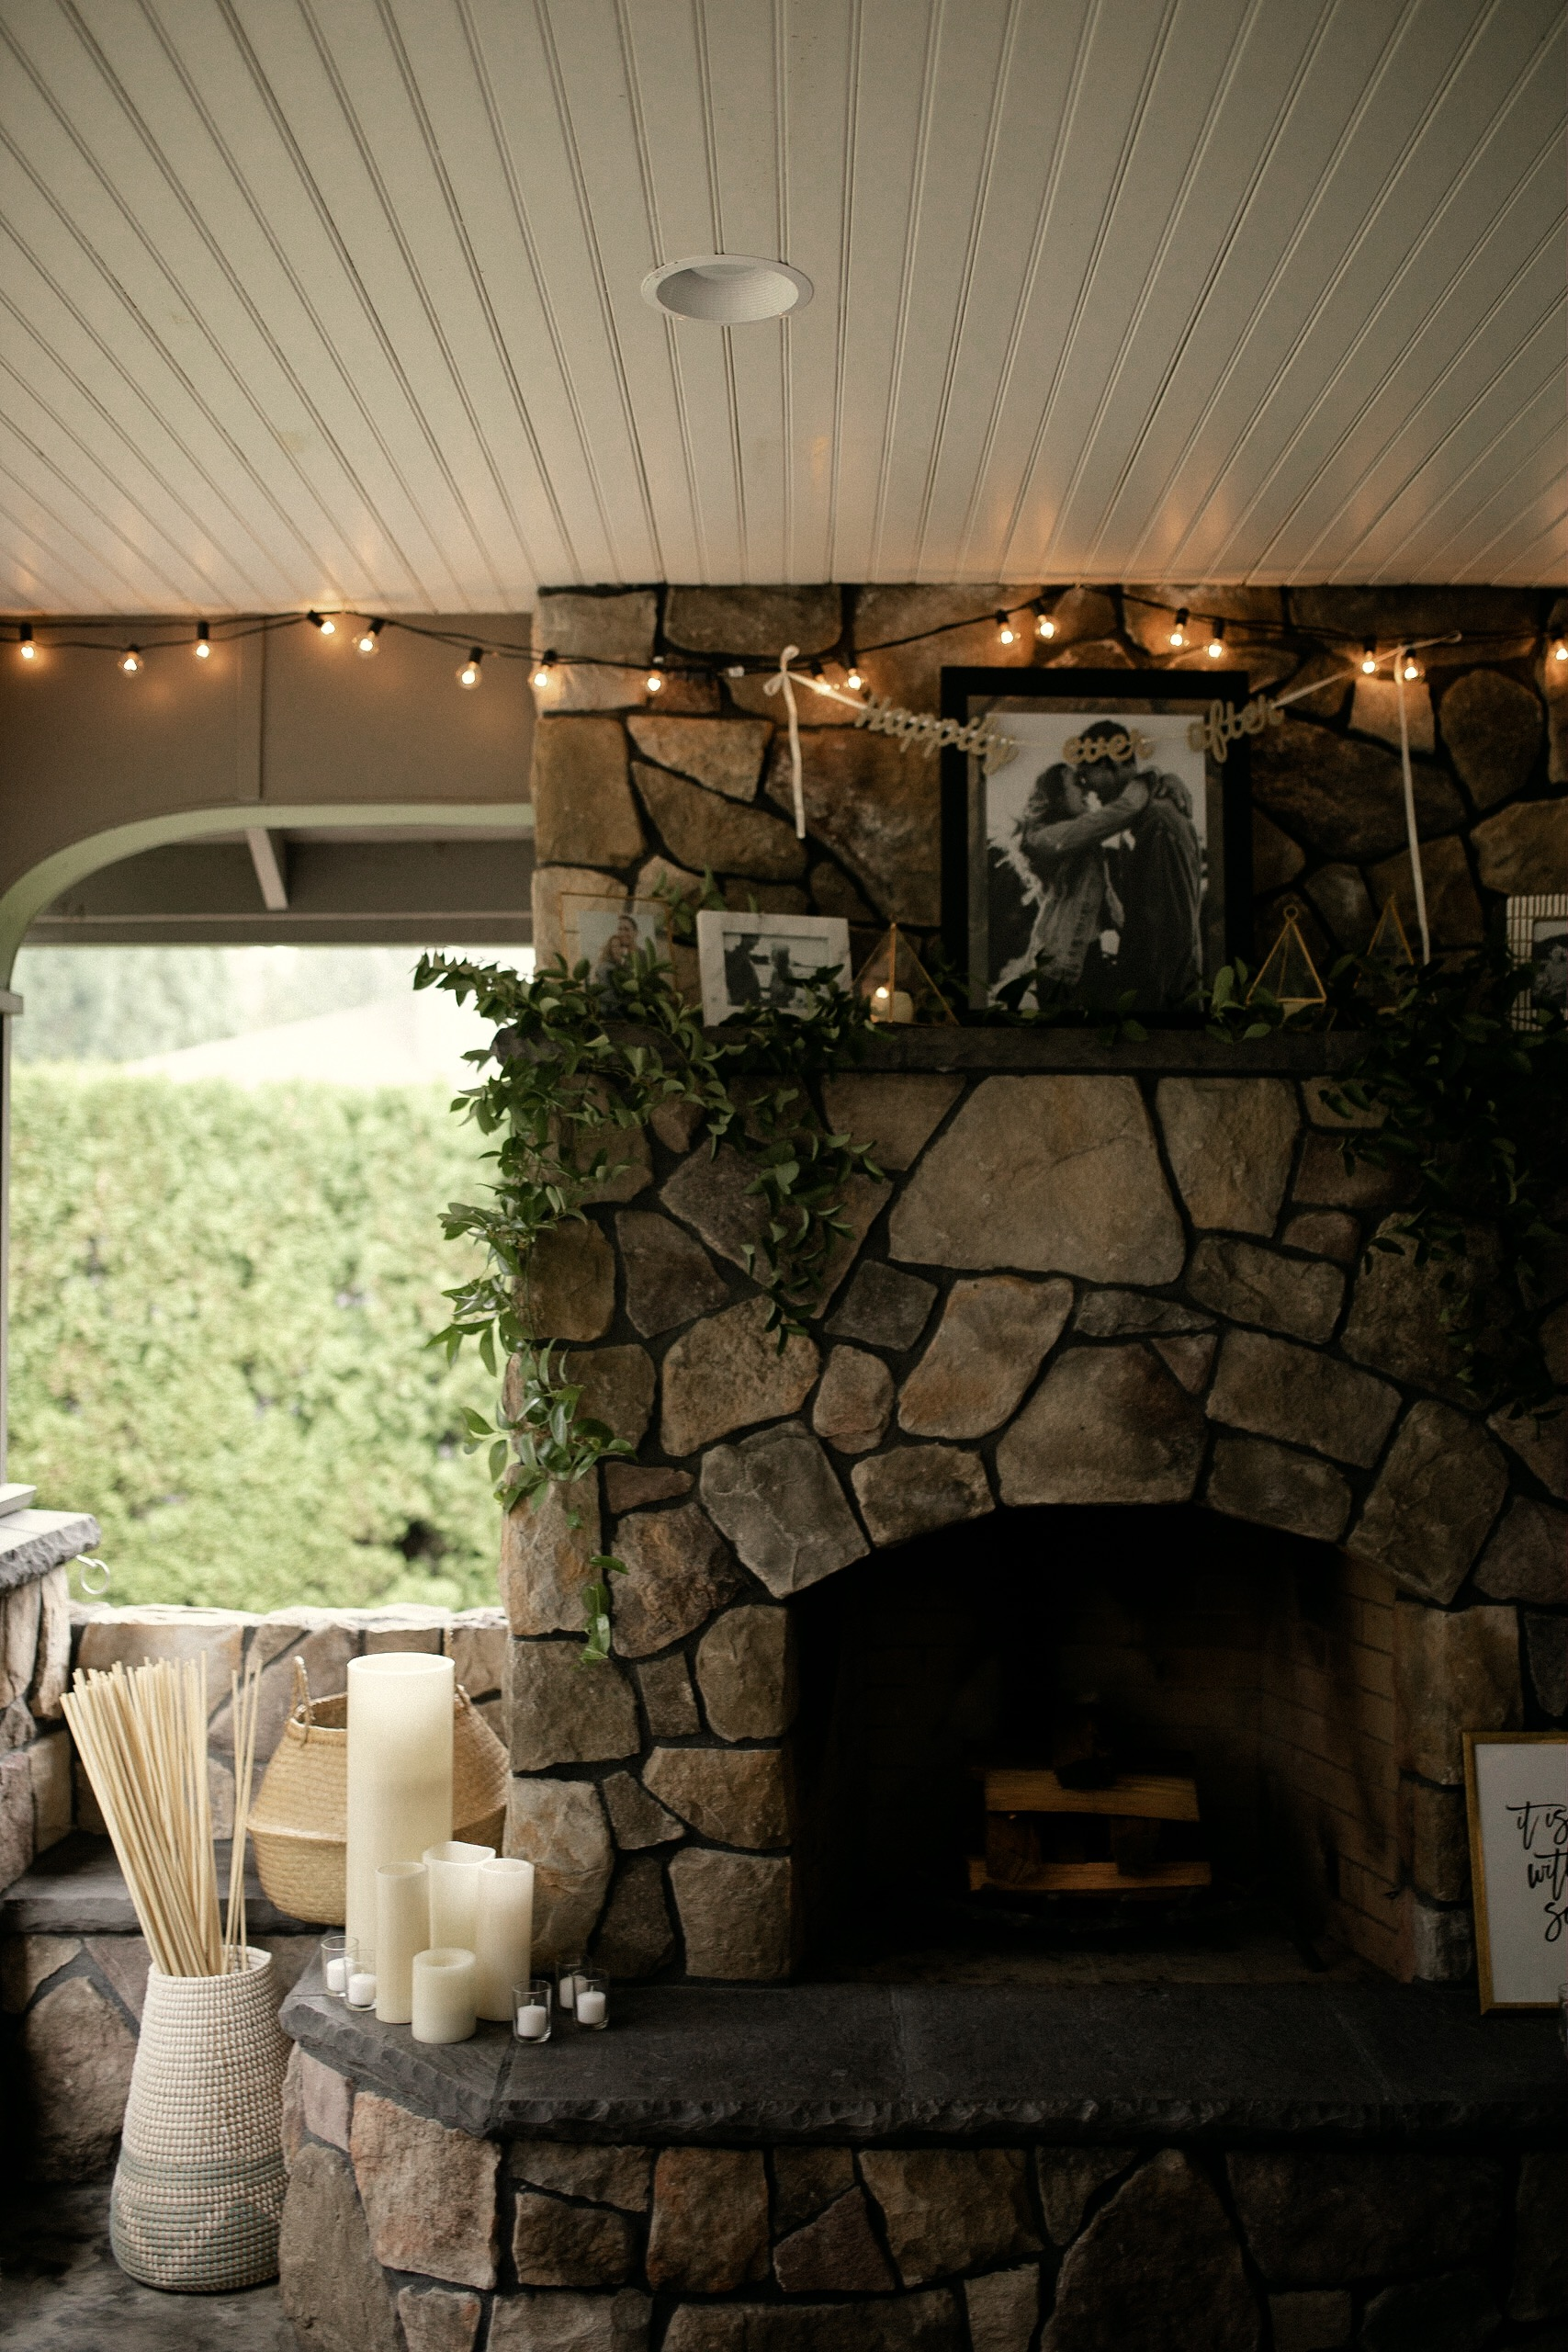 Portland Oregon backyard wedding lounging area with outdoor fireplace